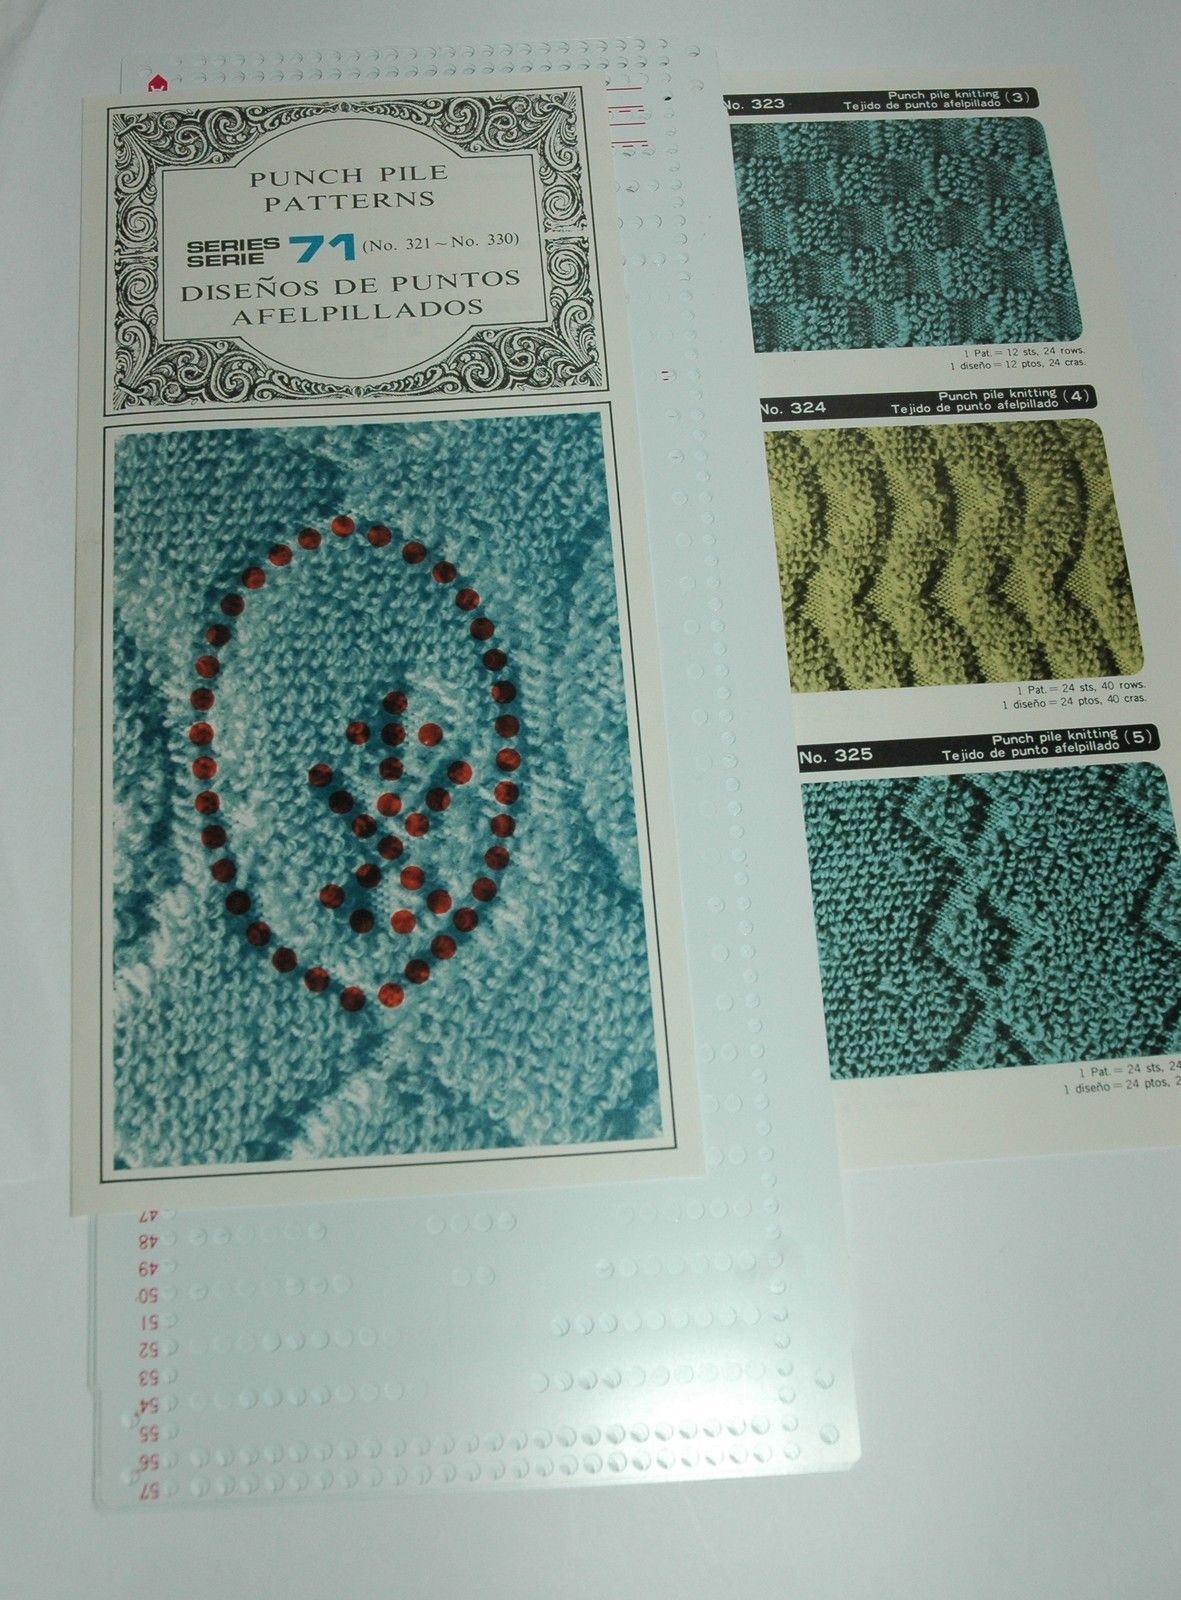 Knitting Machine For Home : Pre punched pattern card sets for knitting machine ribbers